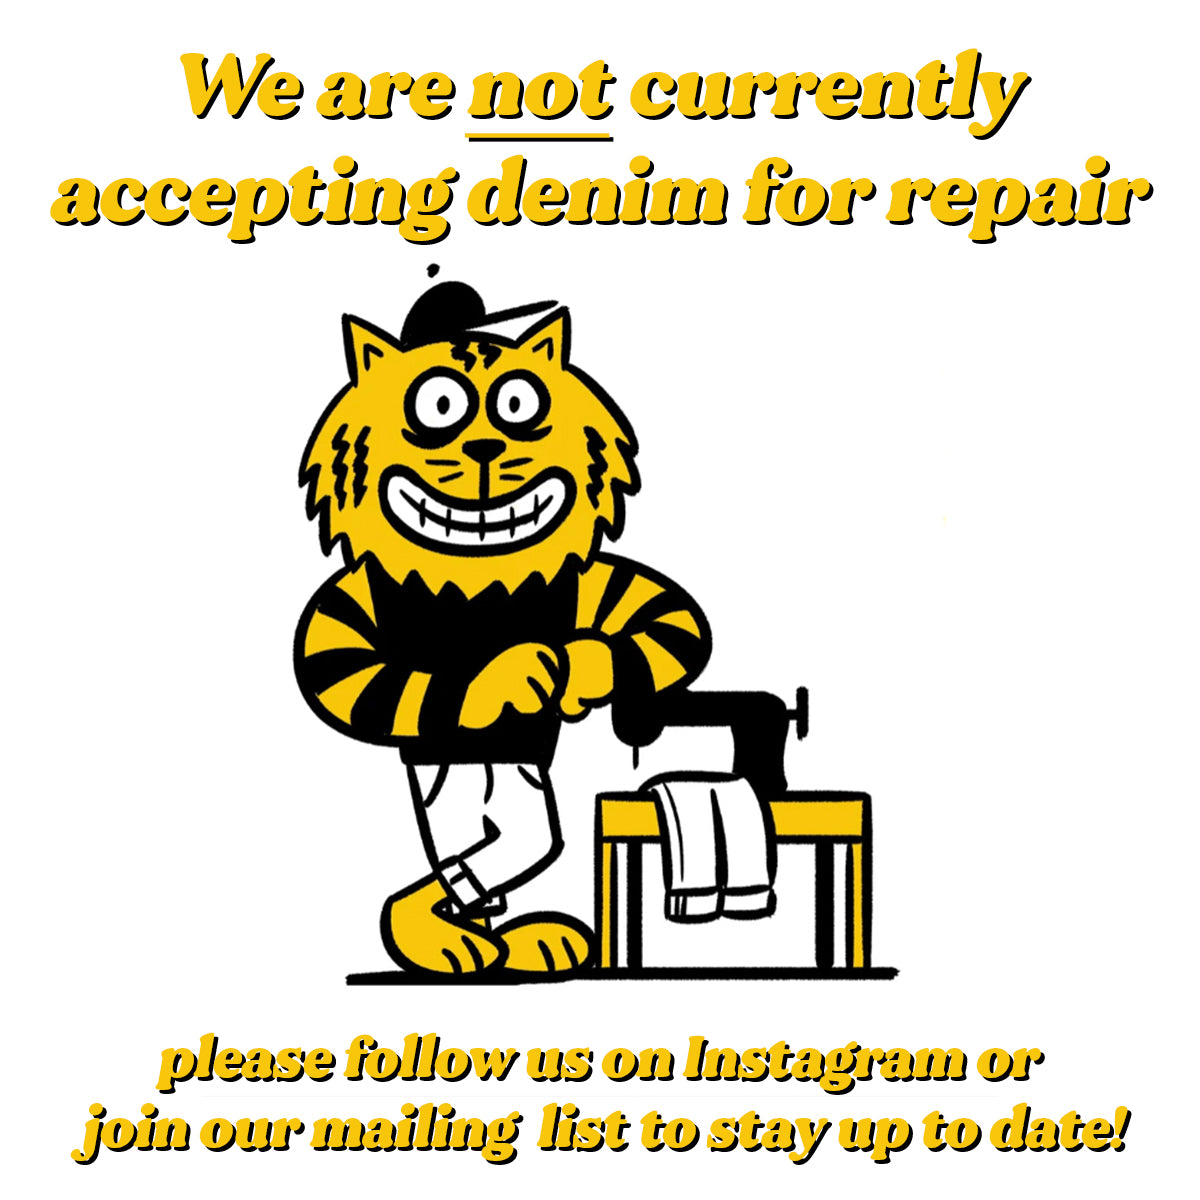 Denim Repairs not currently offered